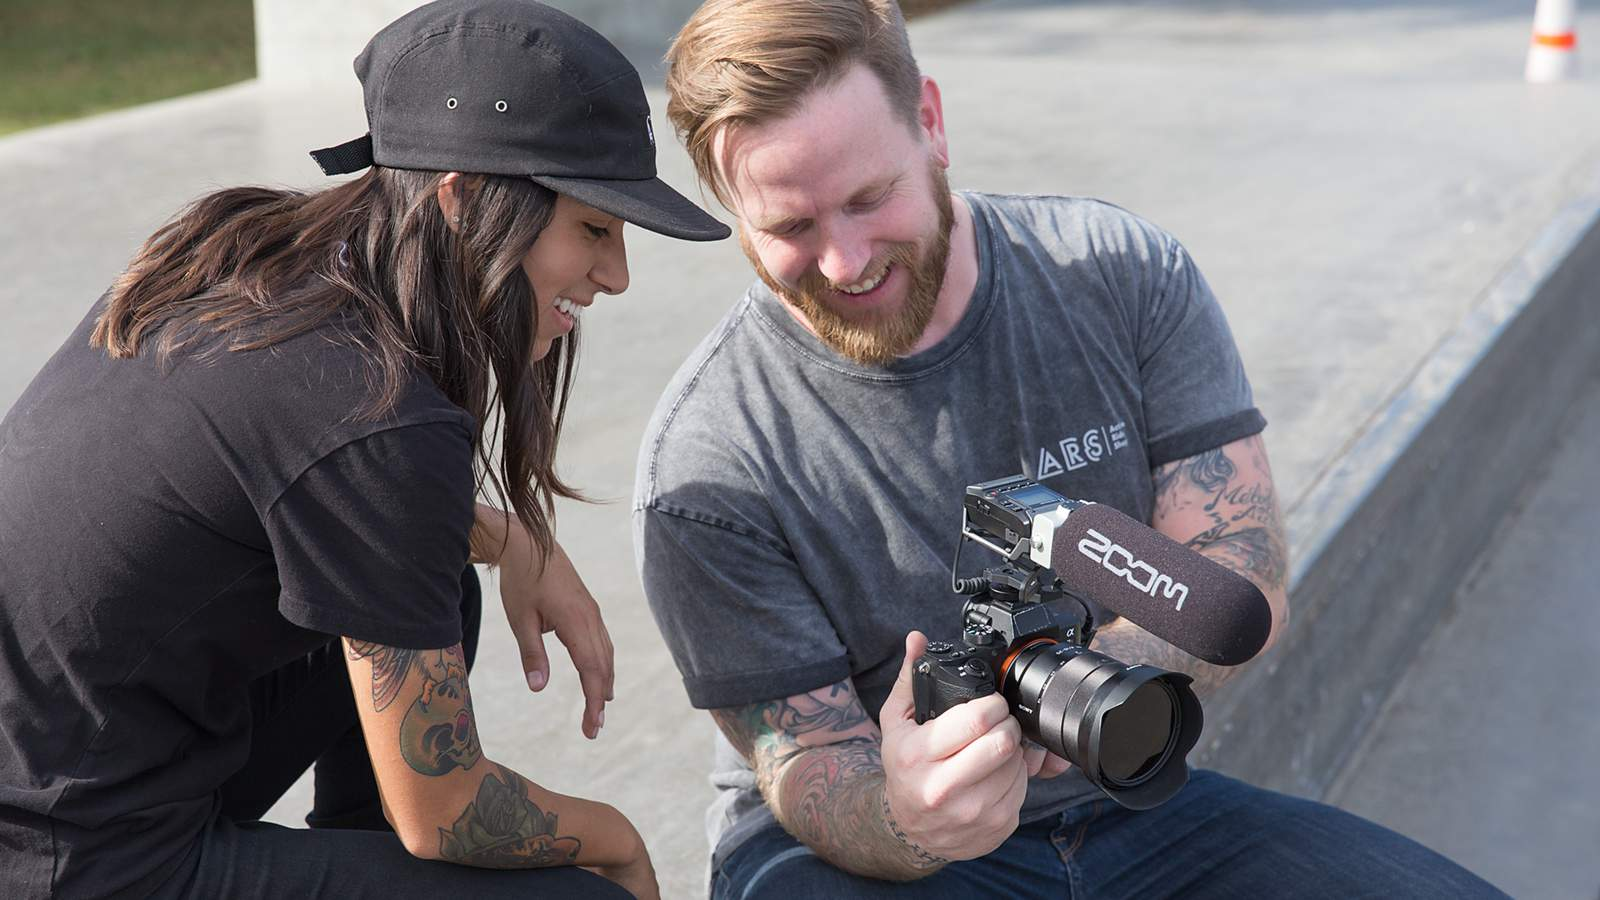 Videographer and skateboarder reviewing footage on DSLR camera with F1-SP mounted